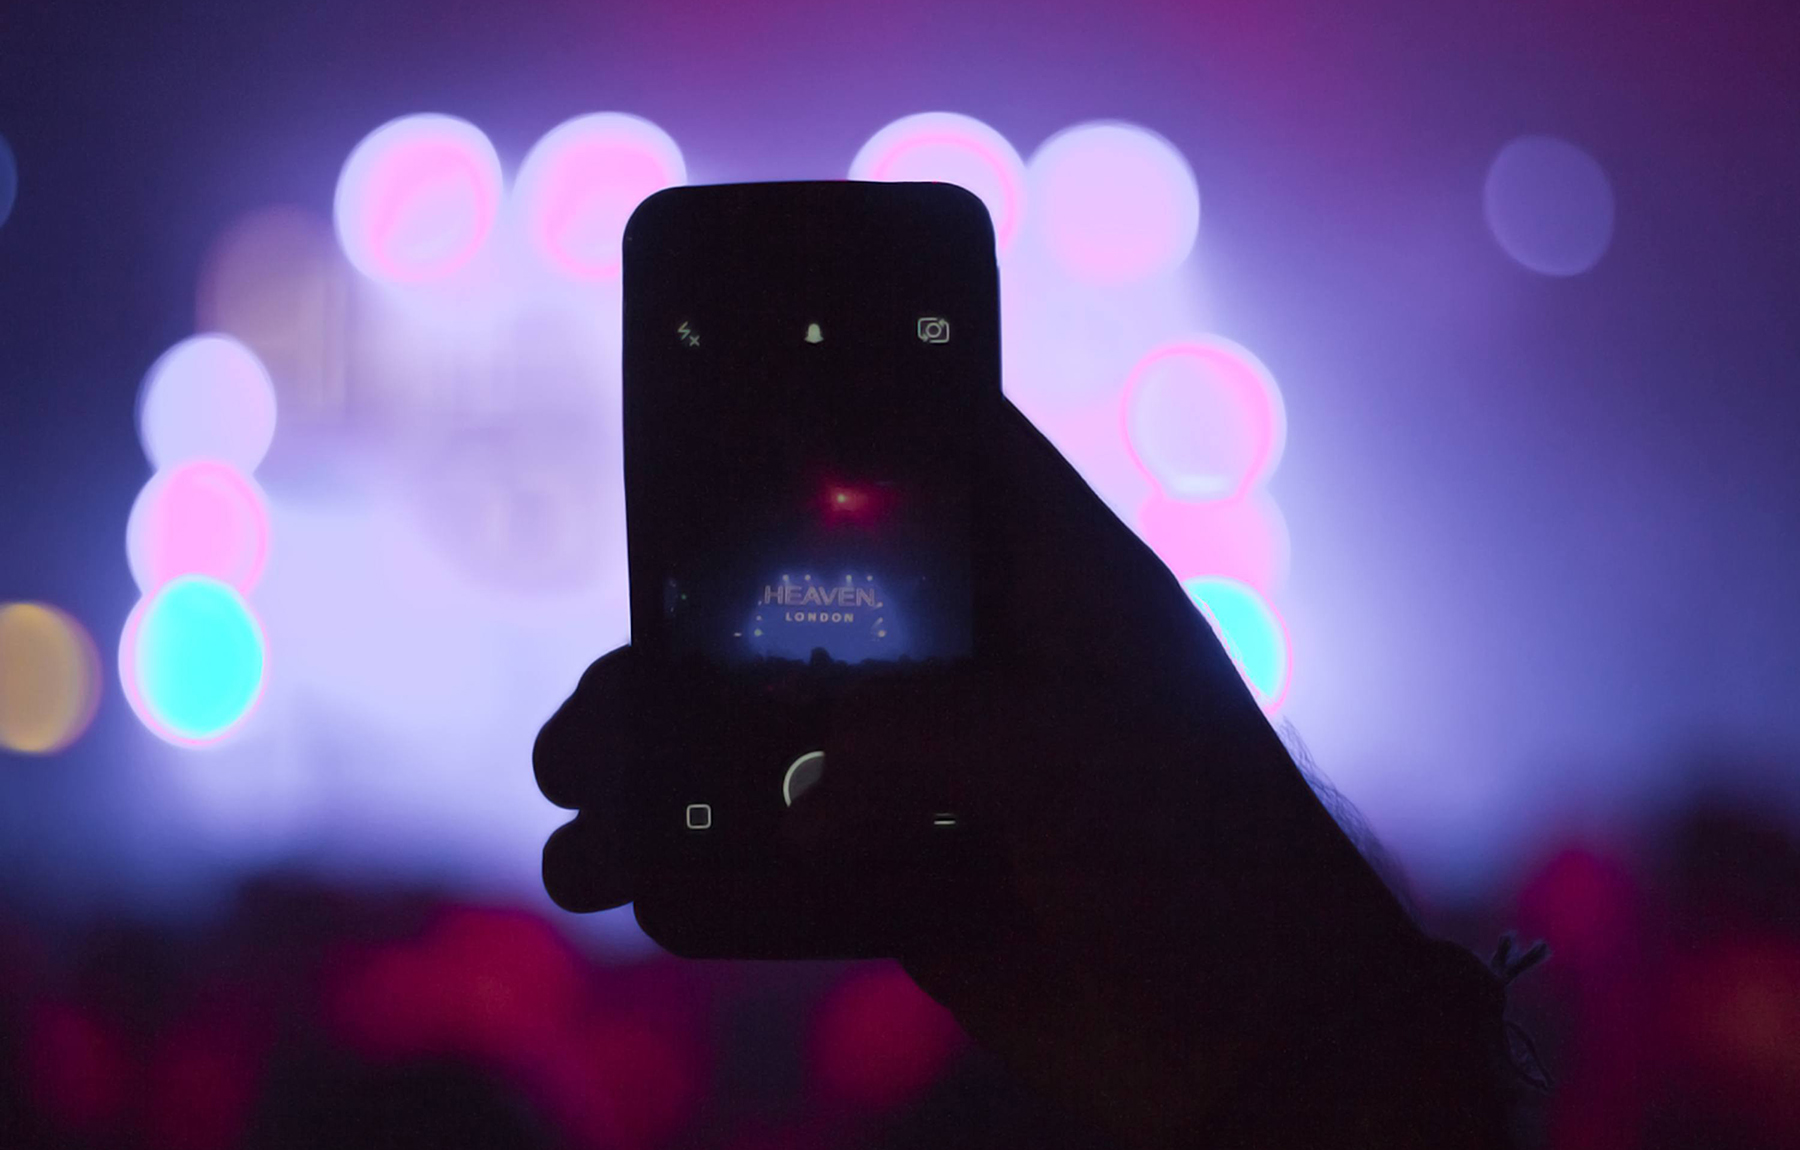 The 5 Best Uses of Facebook Live at Your Church